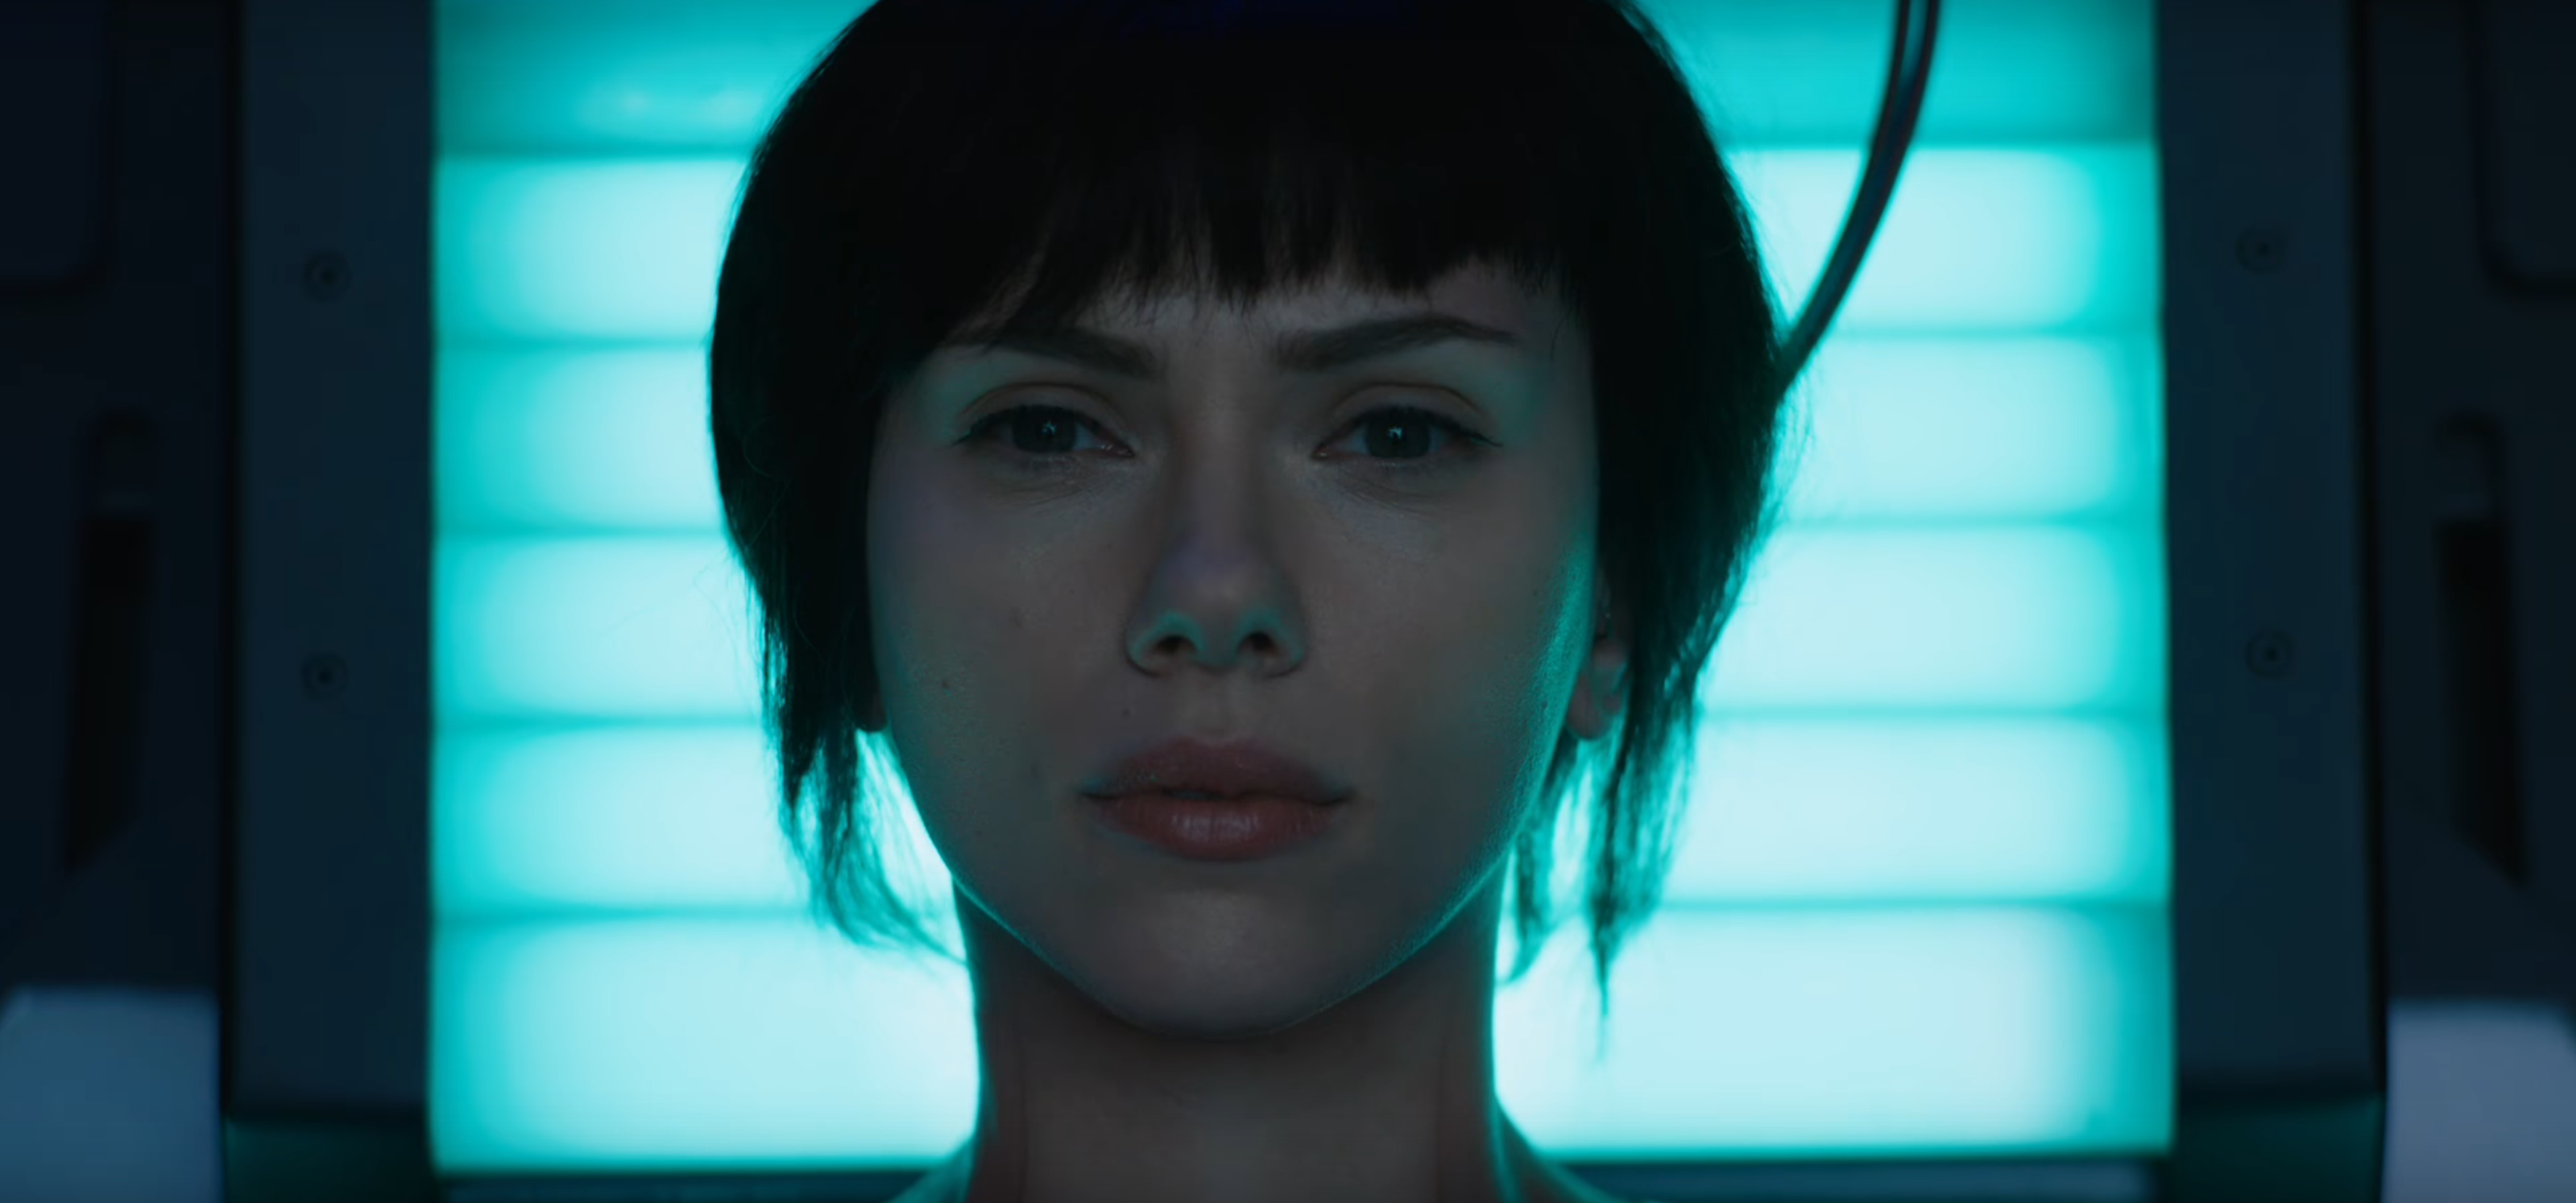 Anime uyarlaması Ghost in the Shell'den ilk fragman